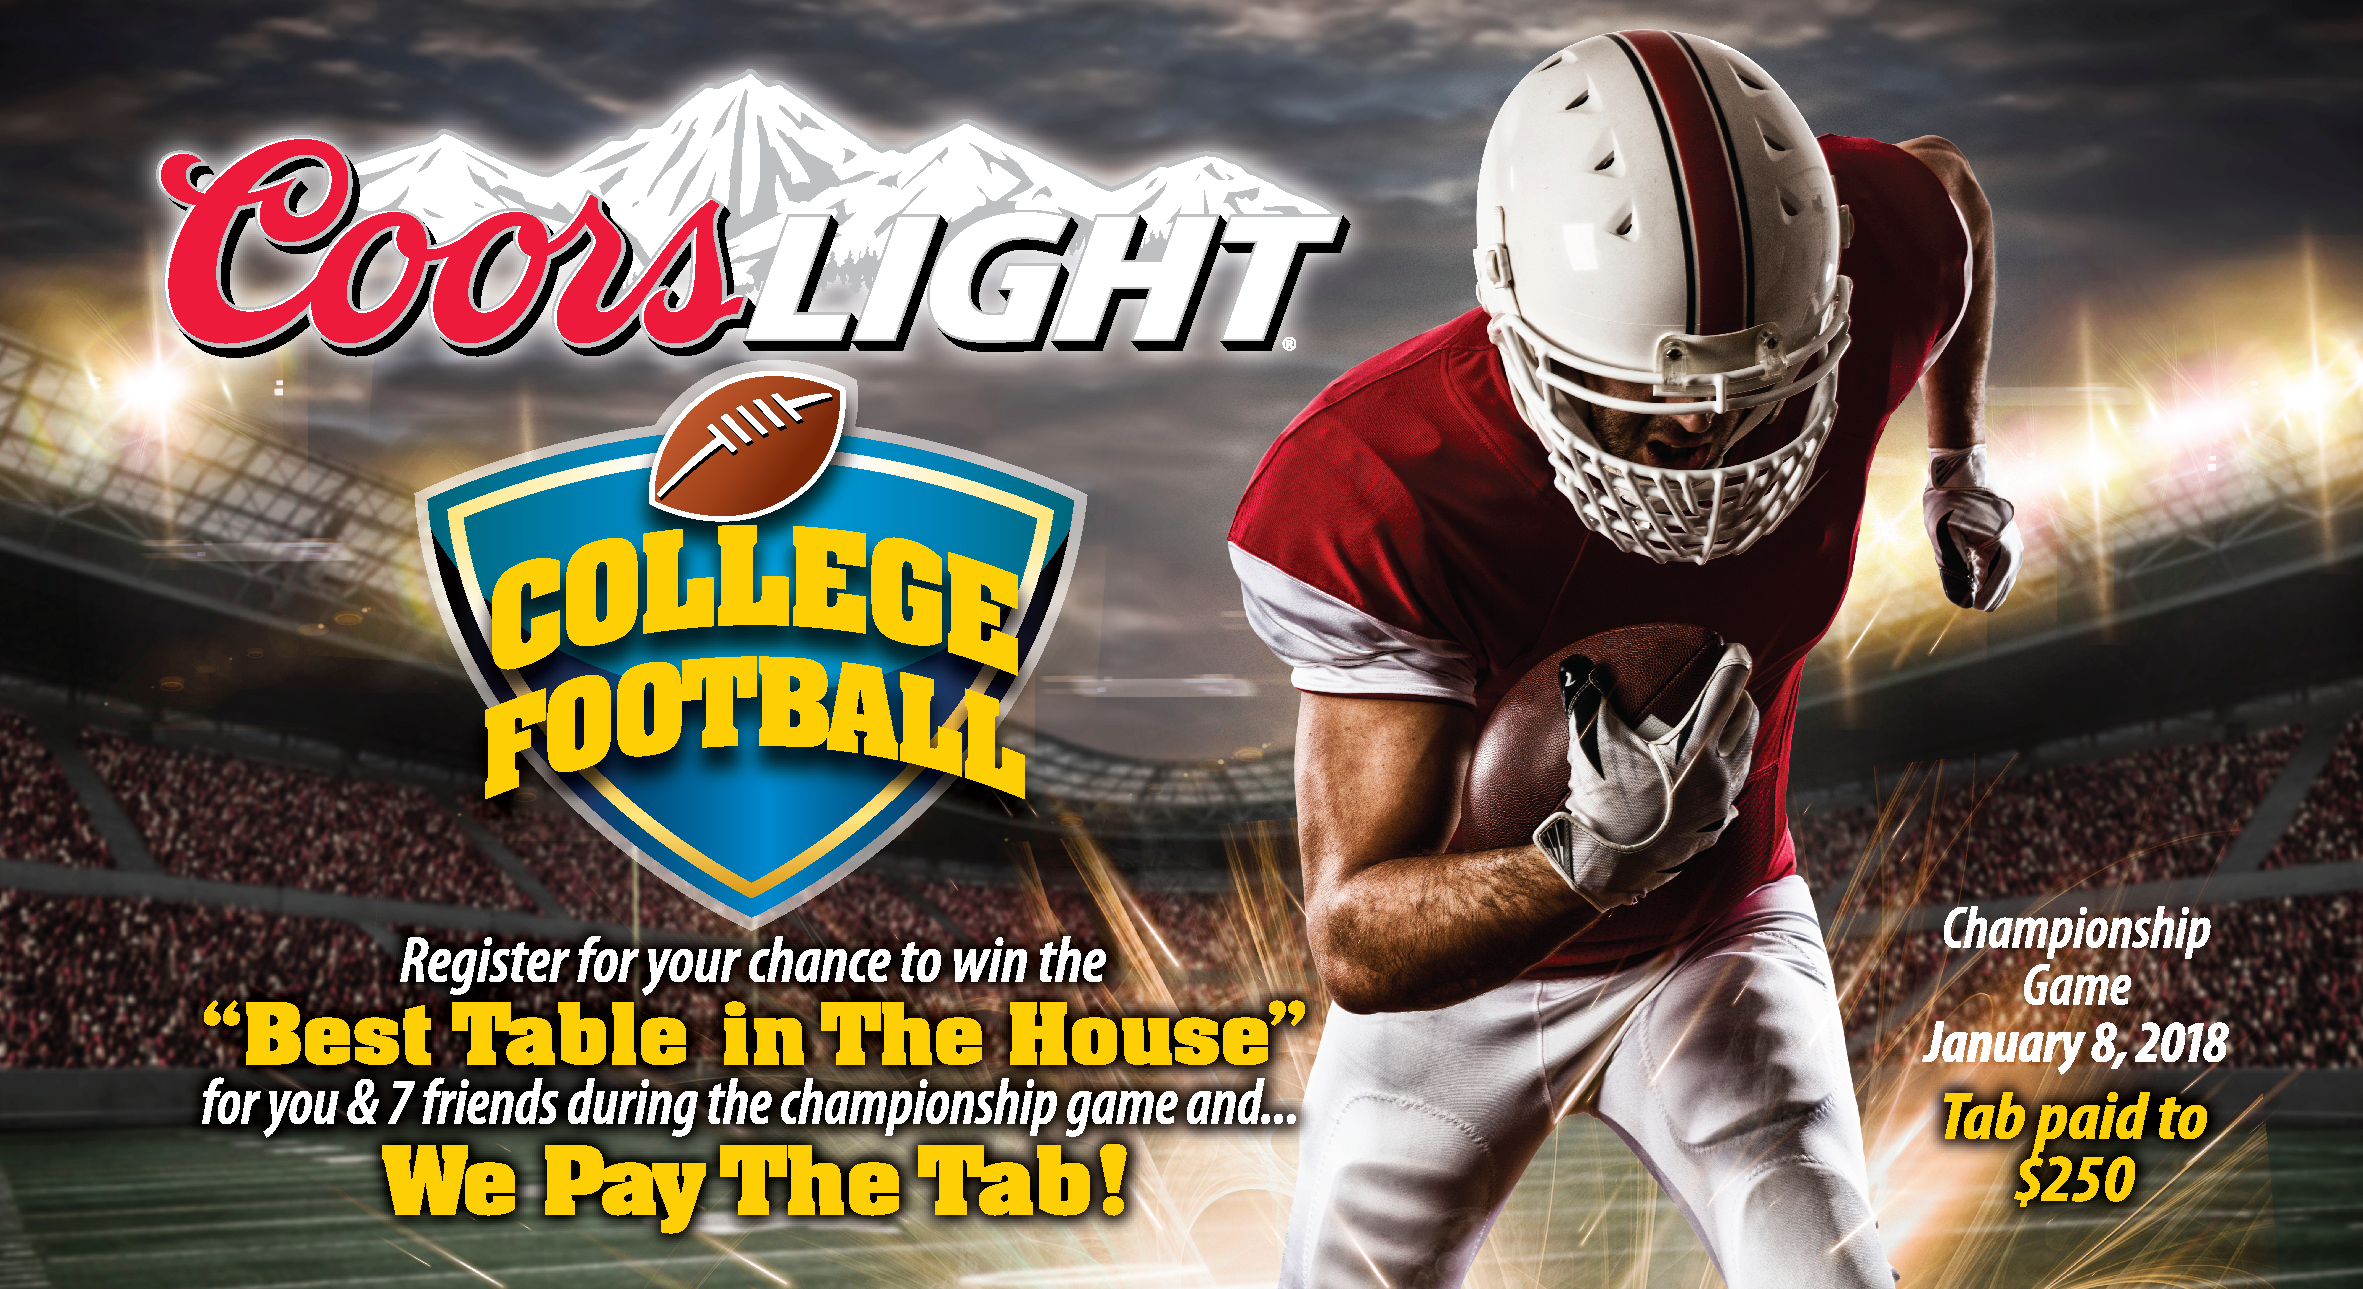 2017 05 kickoff time for national championship game -  Our Coors Light College Football Promotion For Your Chance To Win The Best Table In The House For The January 8th College Championship Football Game